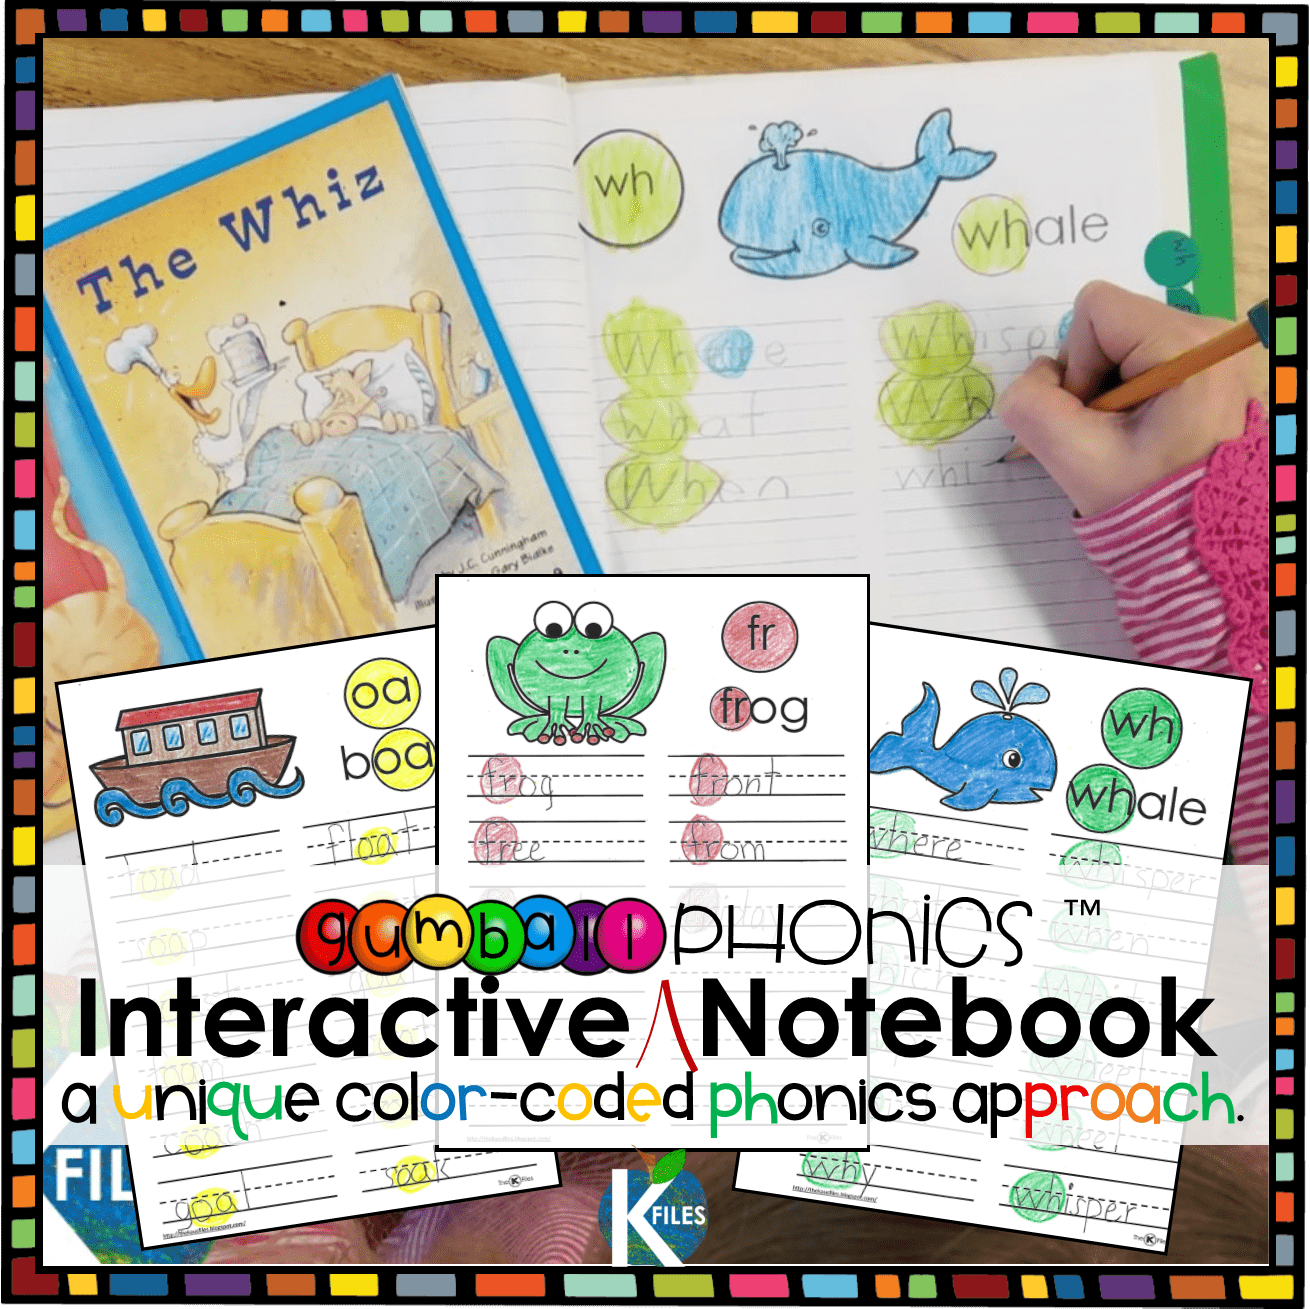 "The Phonics Interactive Notebook uses the ""Gumball Phonics"" approach: This unique color-coded phonics strategy will keep your young writers and readers engaged and alert for phonics and spelling patterns they are learning in your Word Study program during your literacy block."